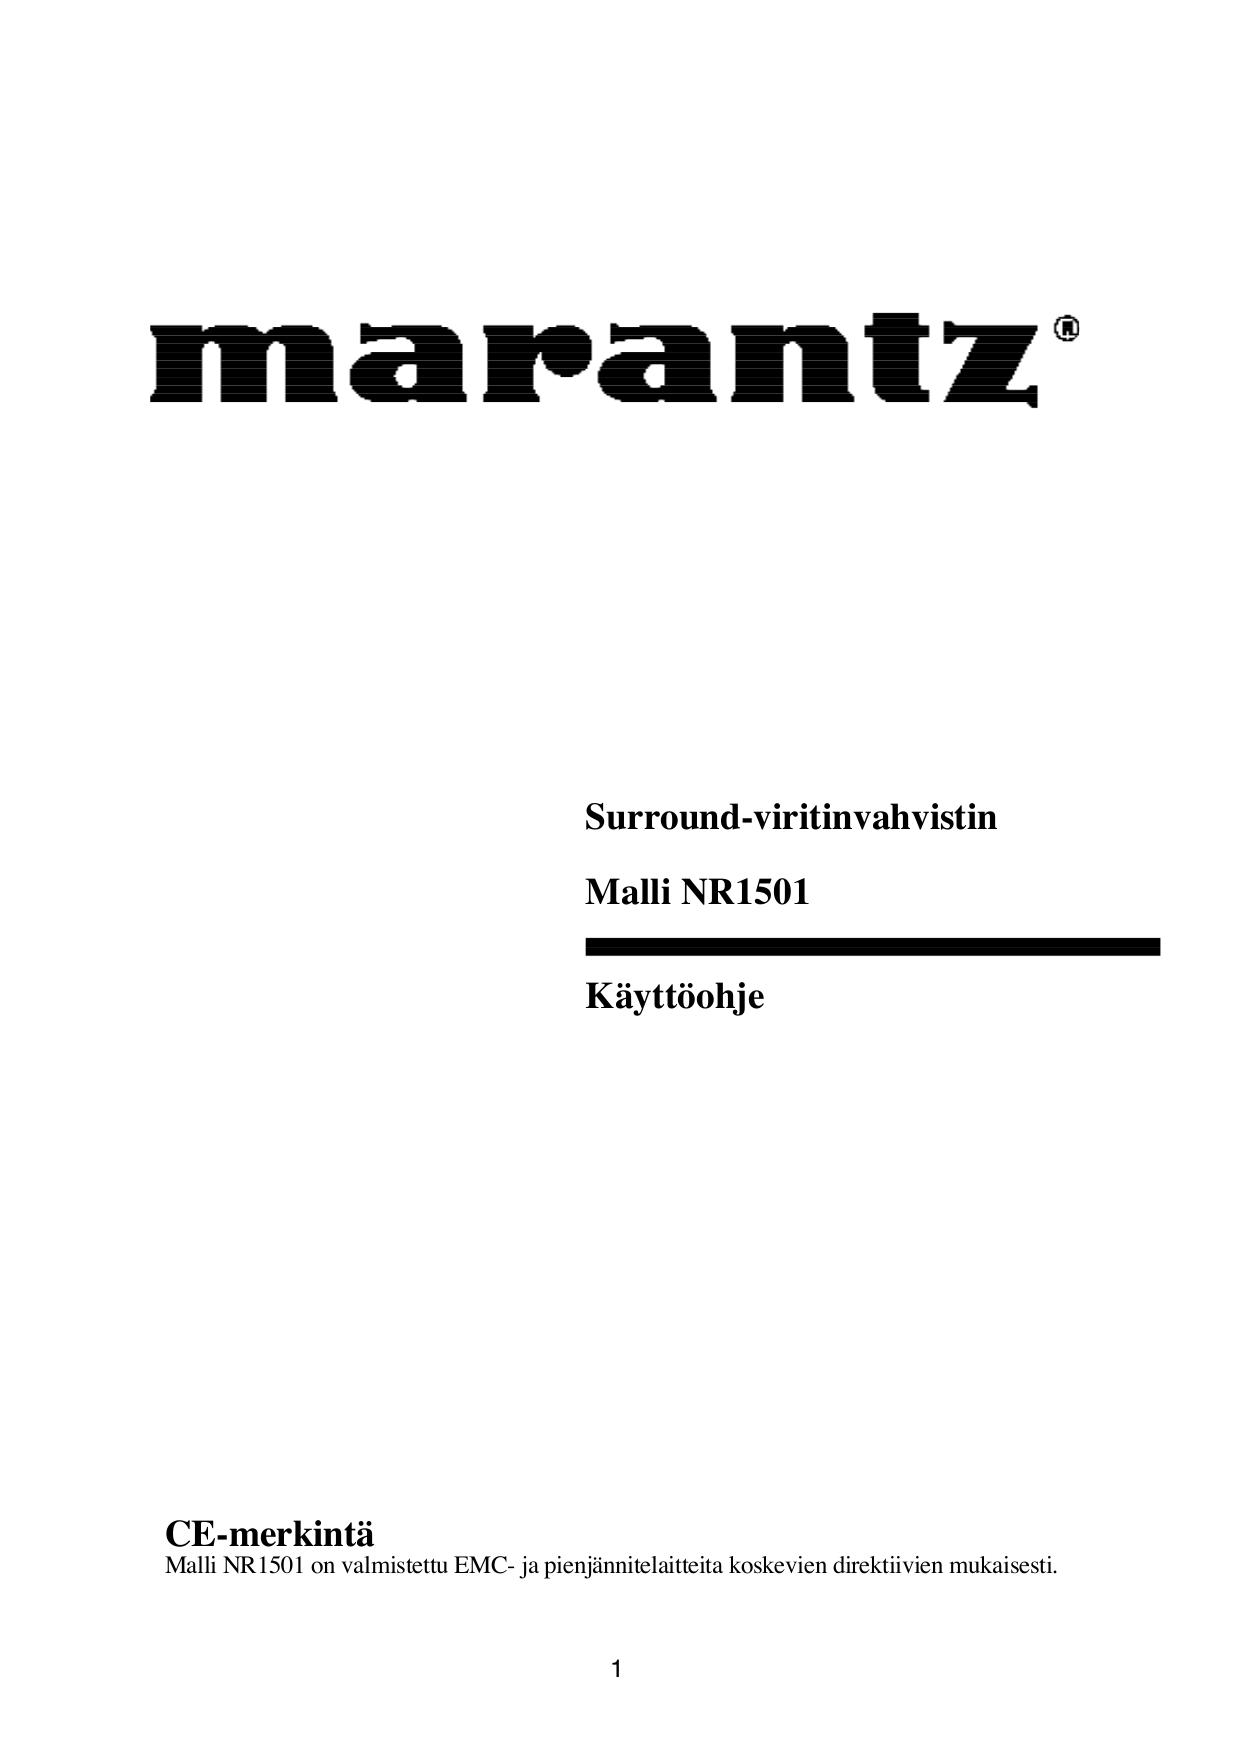 Download free pdf for Marantz NR1501 Receiver manual